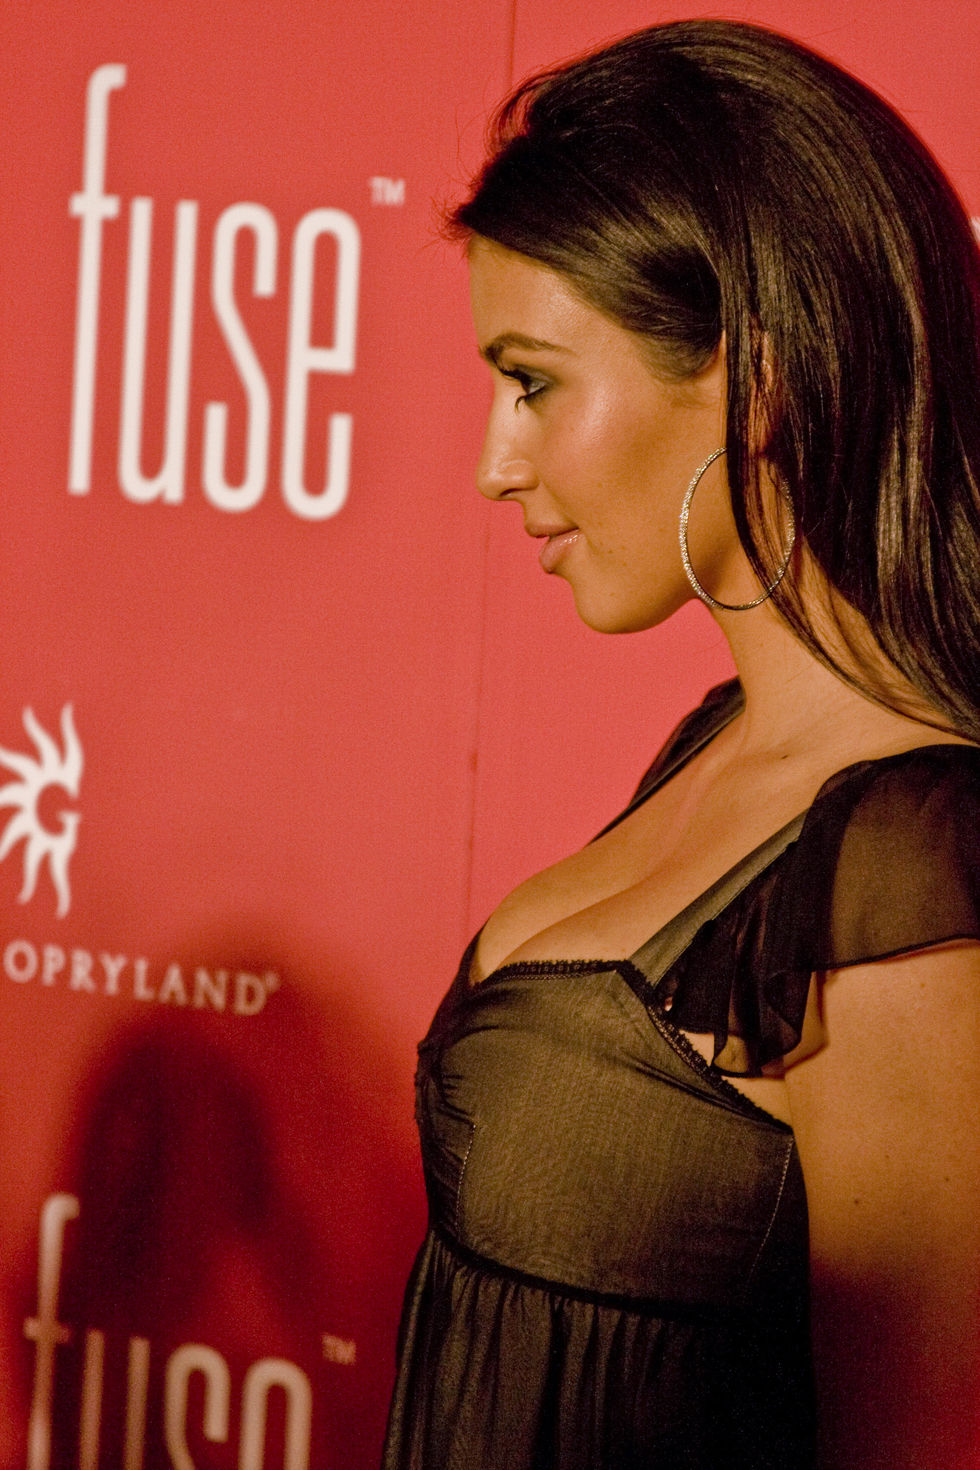 kim-kardashian-grand-opening-of-fuse-in-nashville-01